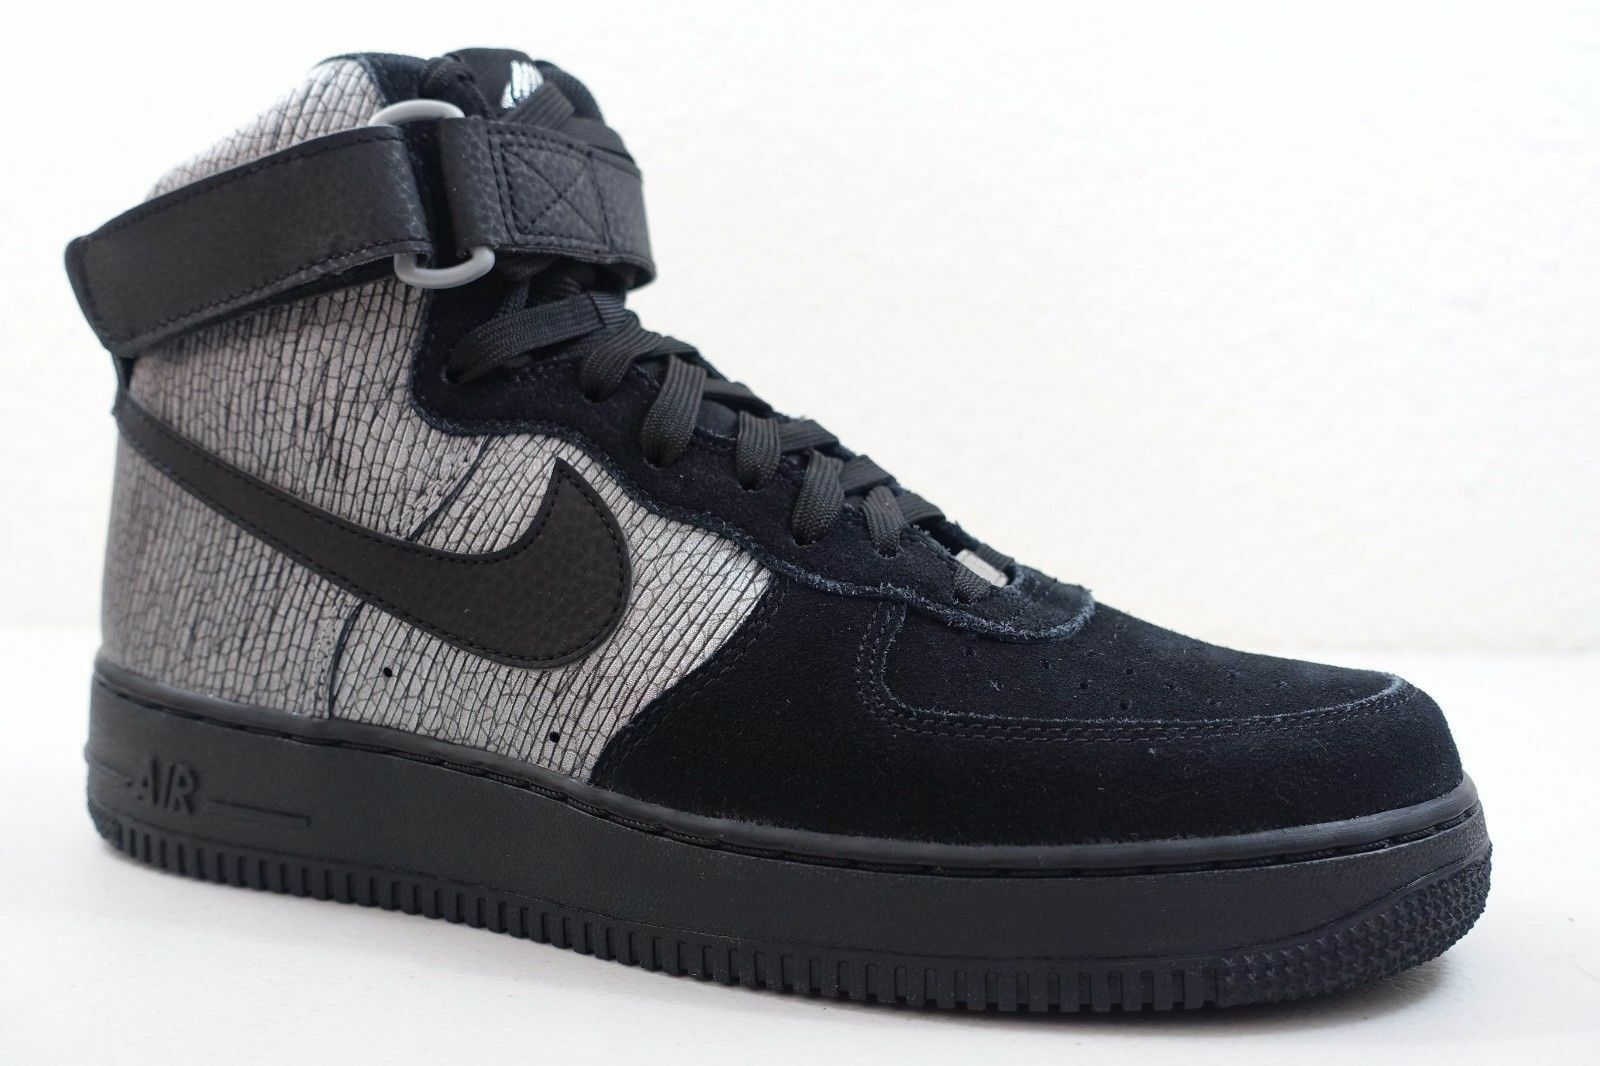 NIKE WOMEN'S AIR FORCE 1 HI PRM SHOES metallic silver black 654440 003